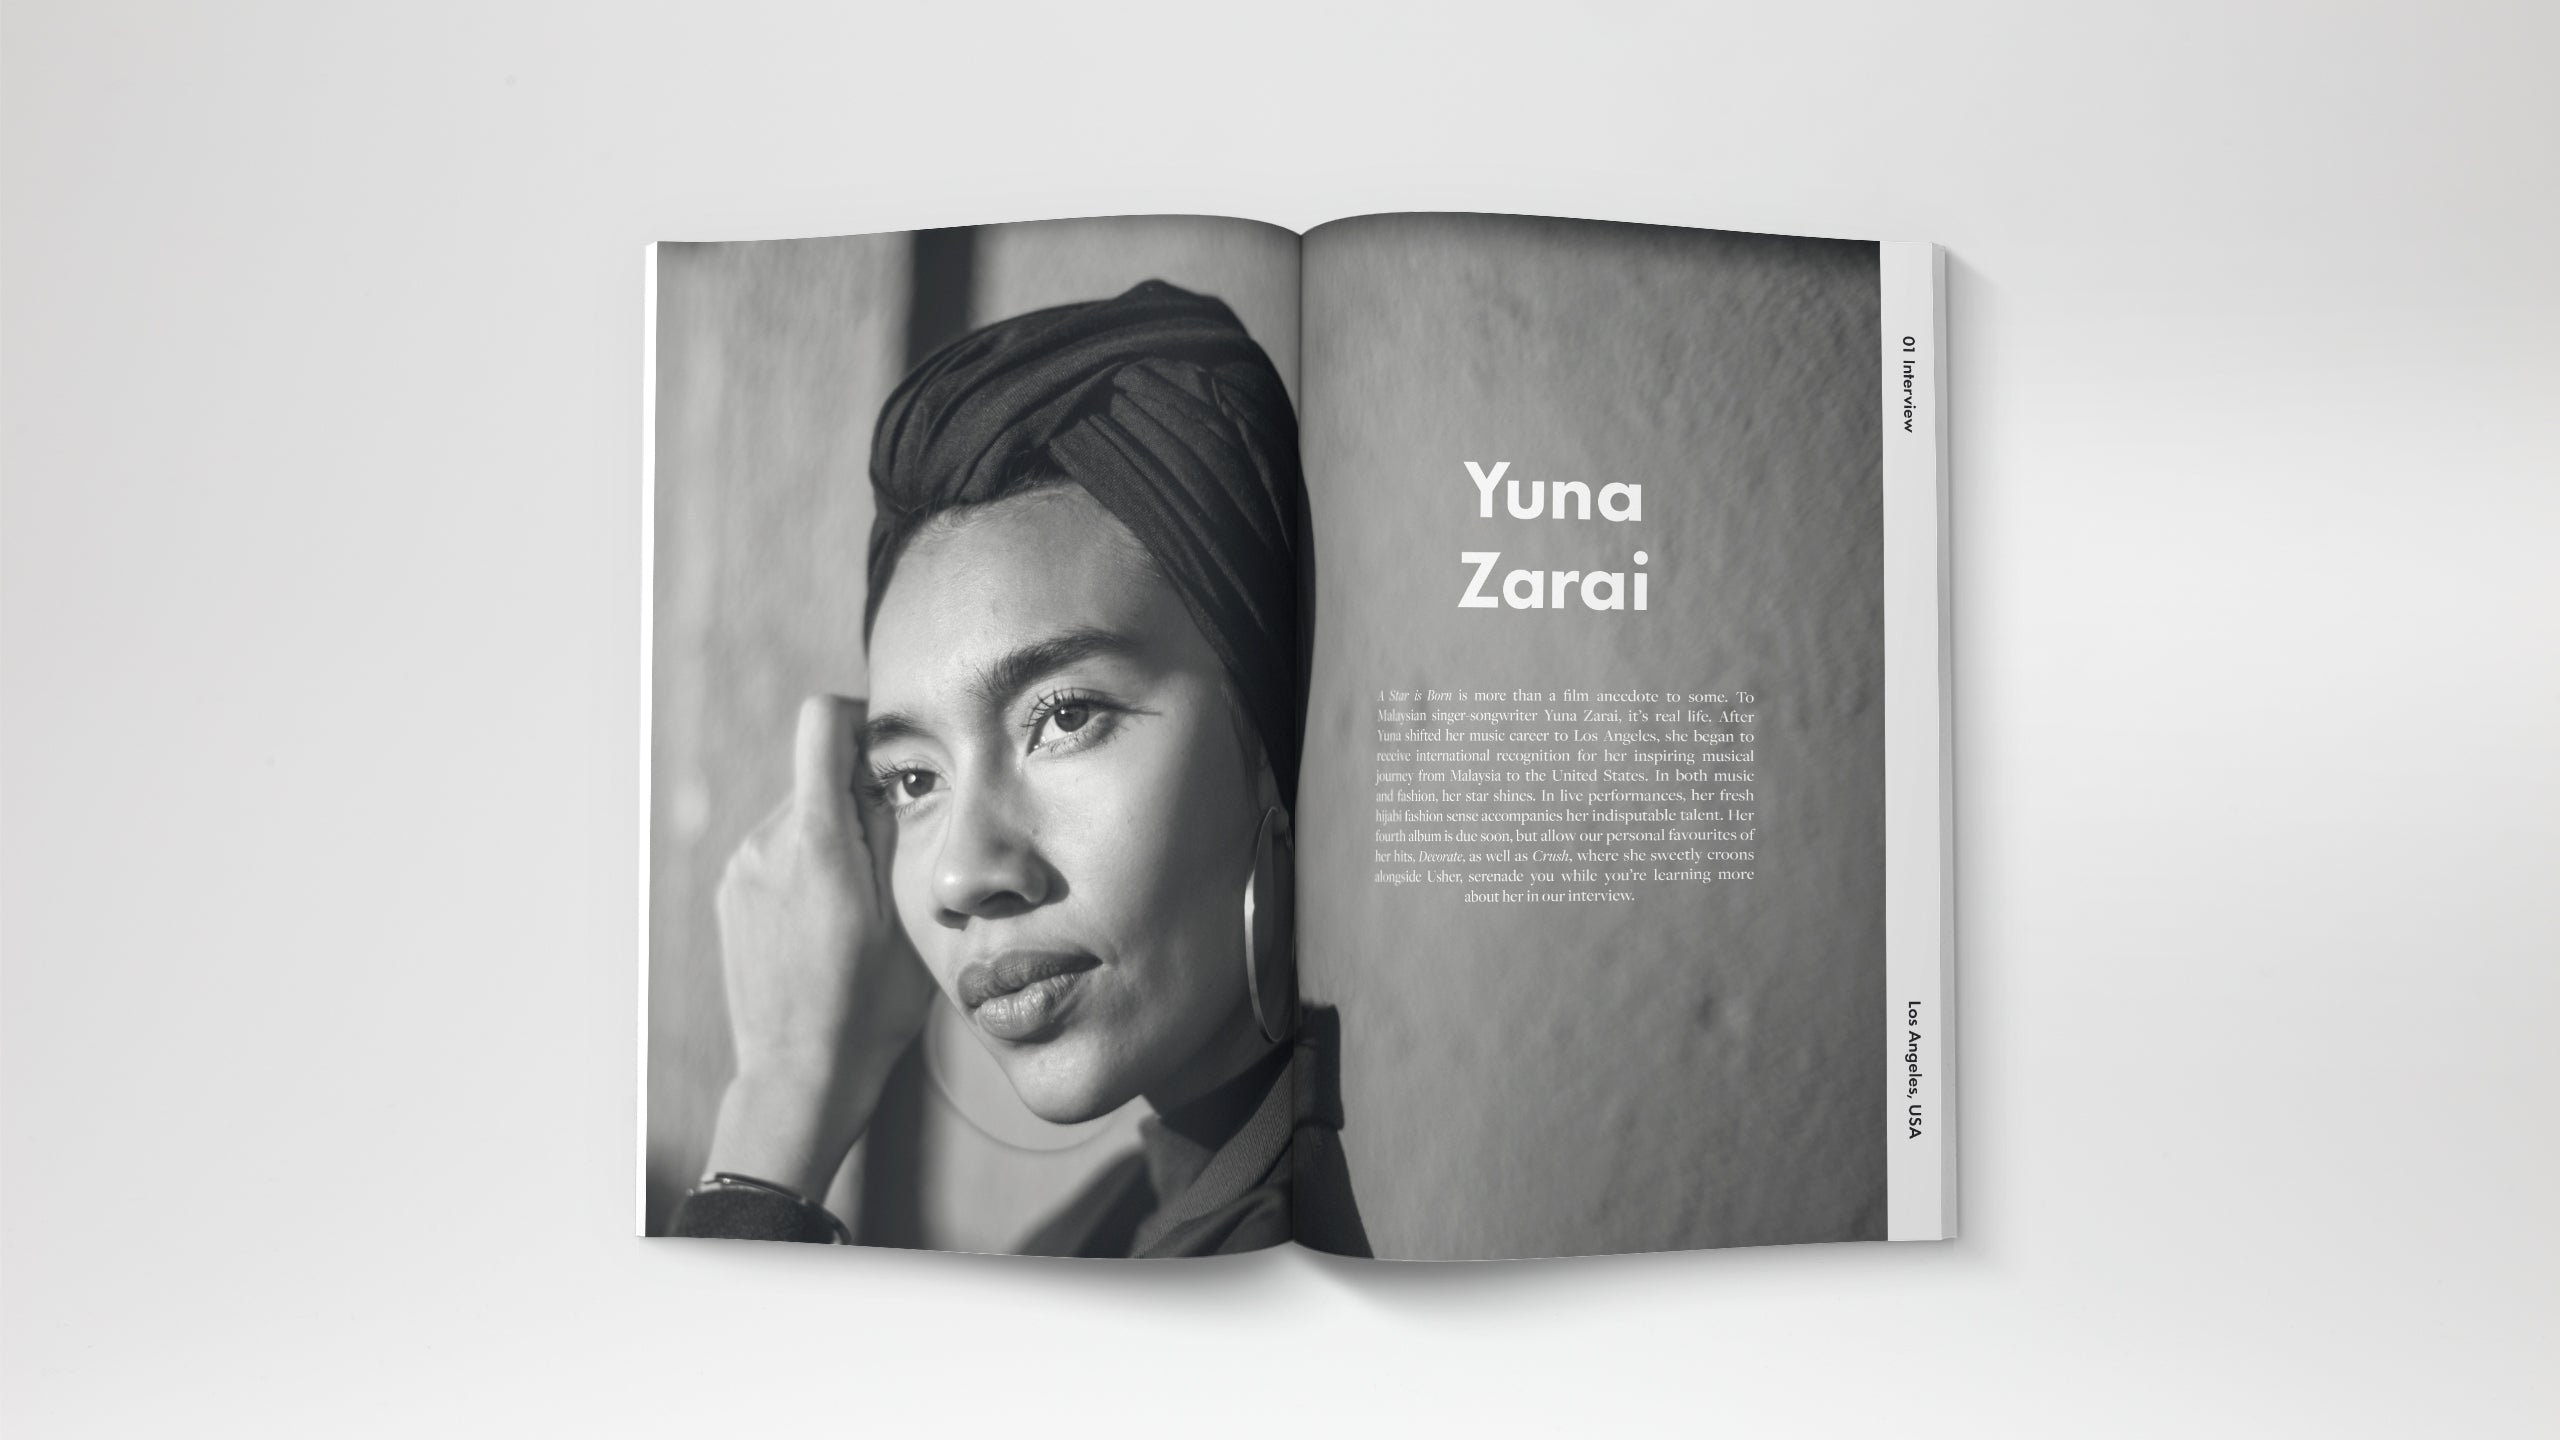 A travel magazine based in Kuala Lumpur Malaysia. An Interview with Yuna Zarai, a singer from Malaysia. Yuna Zarai now lives in Los Angeles with her husband, a producer Adam Sinclair.